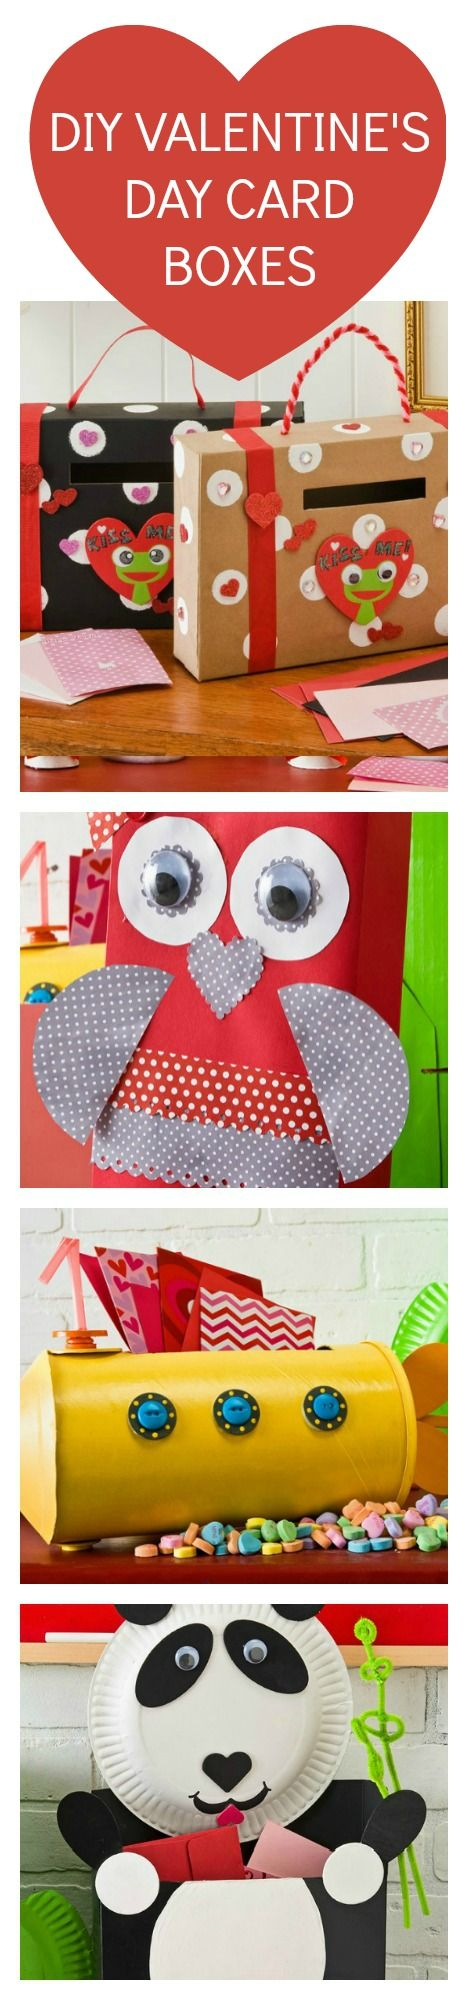 The cutest upcycled DIY Valentine's Day Card Box and treat holder Ideas for boys and girls! Use cereal boxes, oatmeal containers or paper plates for these budget DIY ideas #plaidcrafts